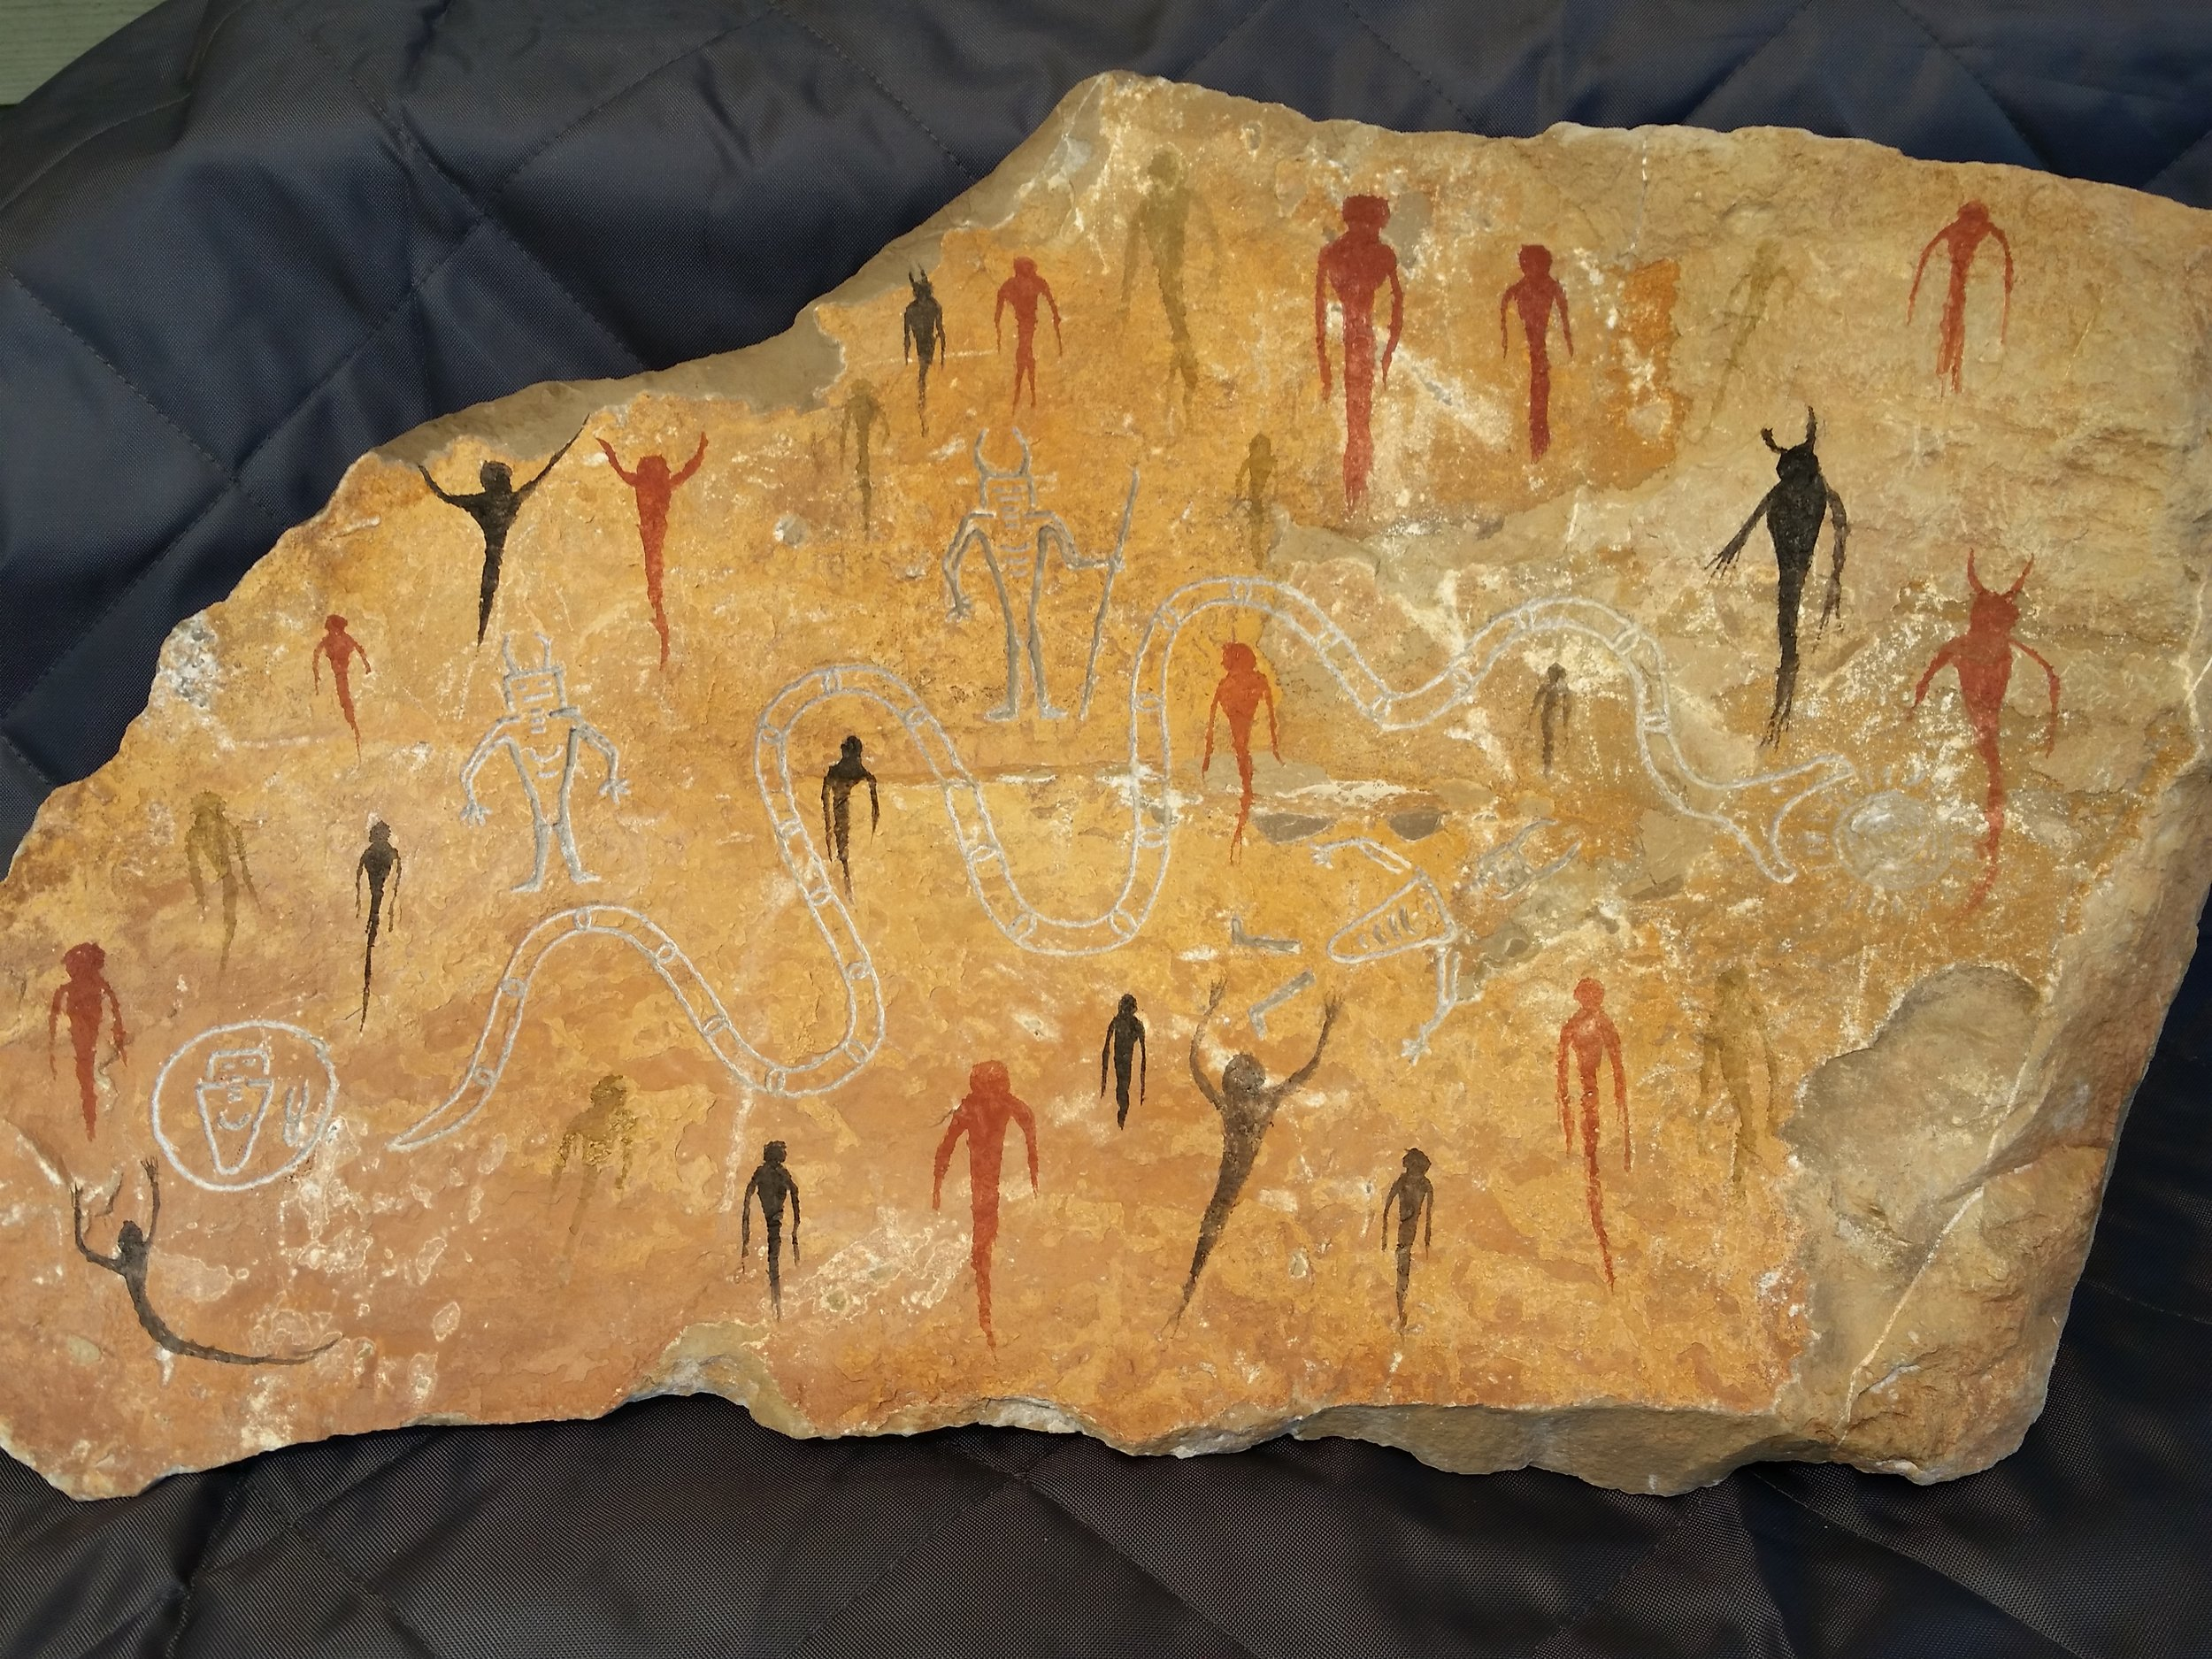 FOURTH DAY VISION, Carved Teton metamorphic rock table piece with red and yellow ochres and animal bone pigment. 60lbs. Aged, then weather treated. $200